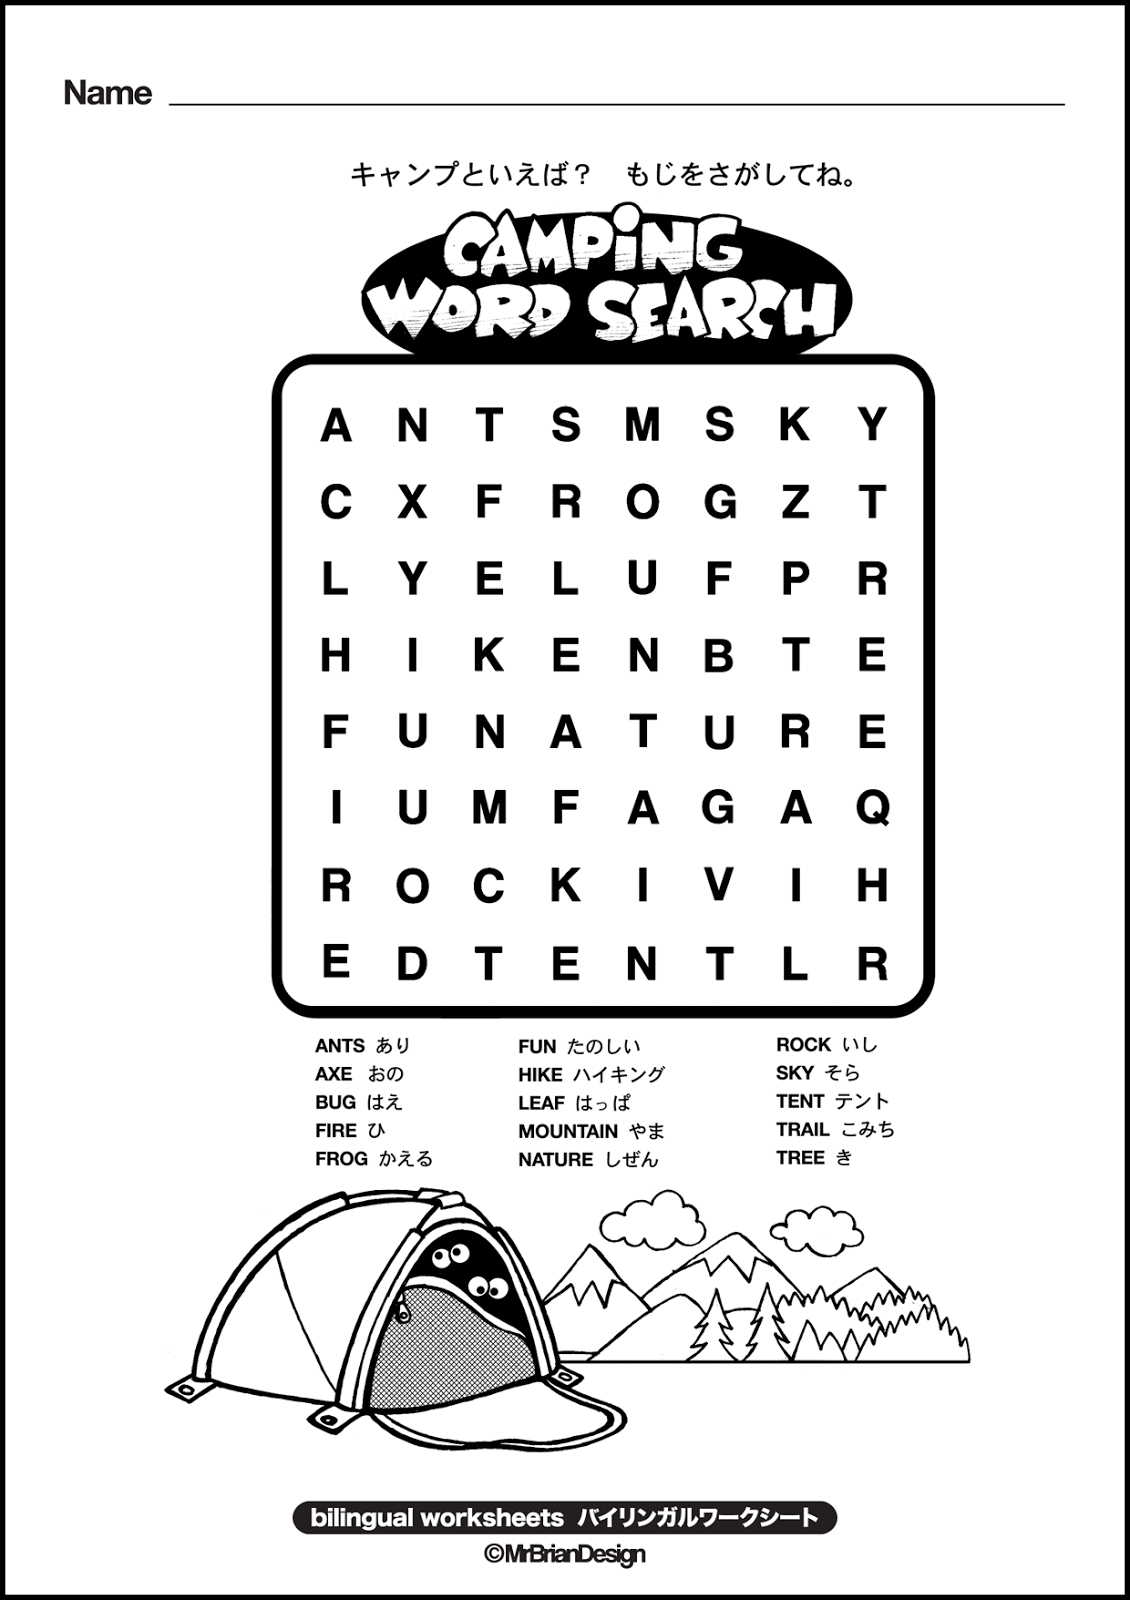 Printable Crossword Puzzles | Travel And Adventure | Printable - Printable Crossword Puzzles Travel